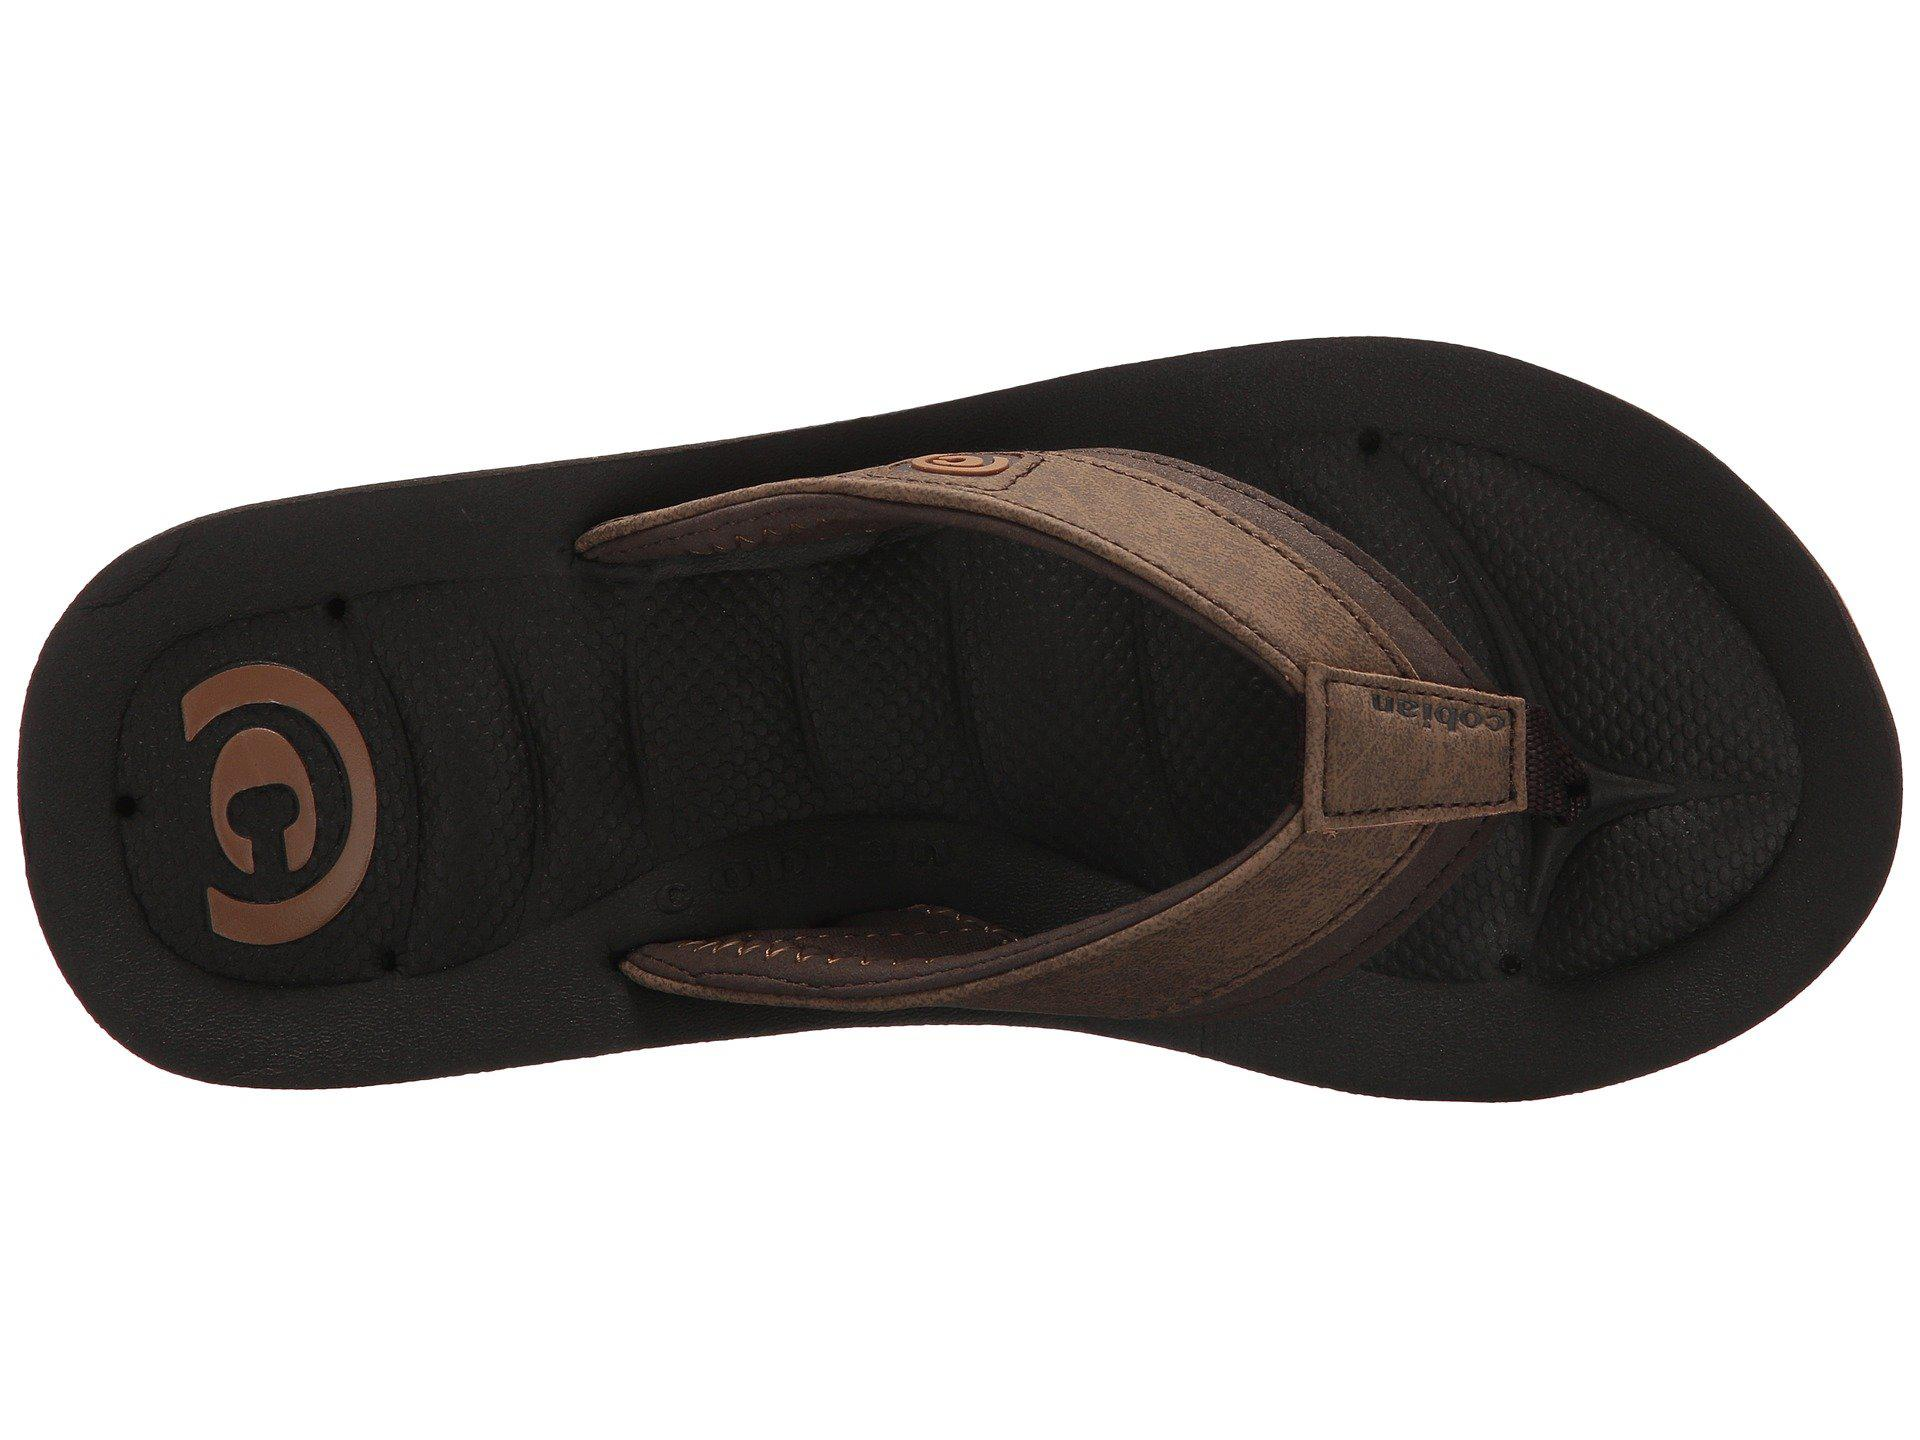 171144abad8 Lyst - Cobian Draino 2 (cement) Men s Sandals in Brown for Men